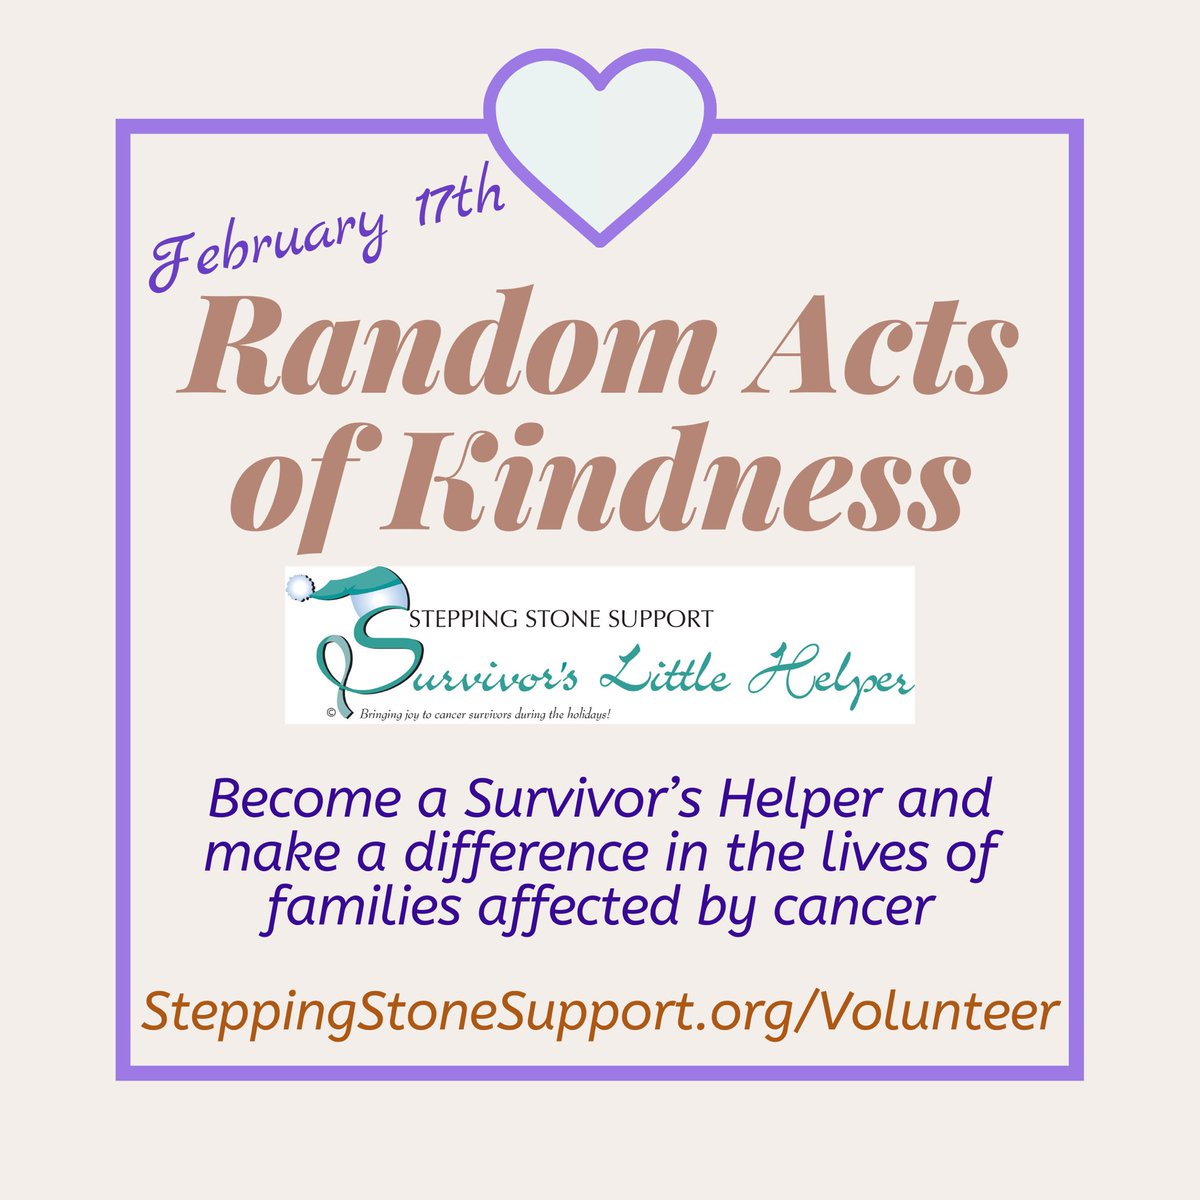 #RandomActsOfKindnessDay Become a Survivor's Helper - your kindness touches the lives of so many in need http://SteppingStoneSupport.org/volunteer #postivevibes #BeTheChange #cancersupport #KindnessMatterspic.twitter.com/OWbq513Fk5